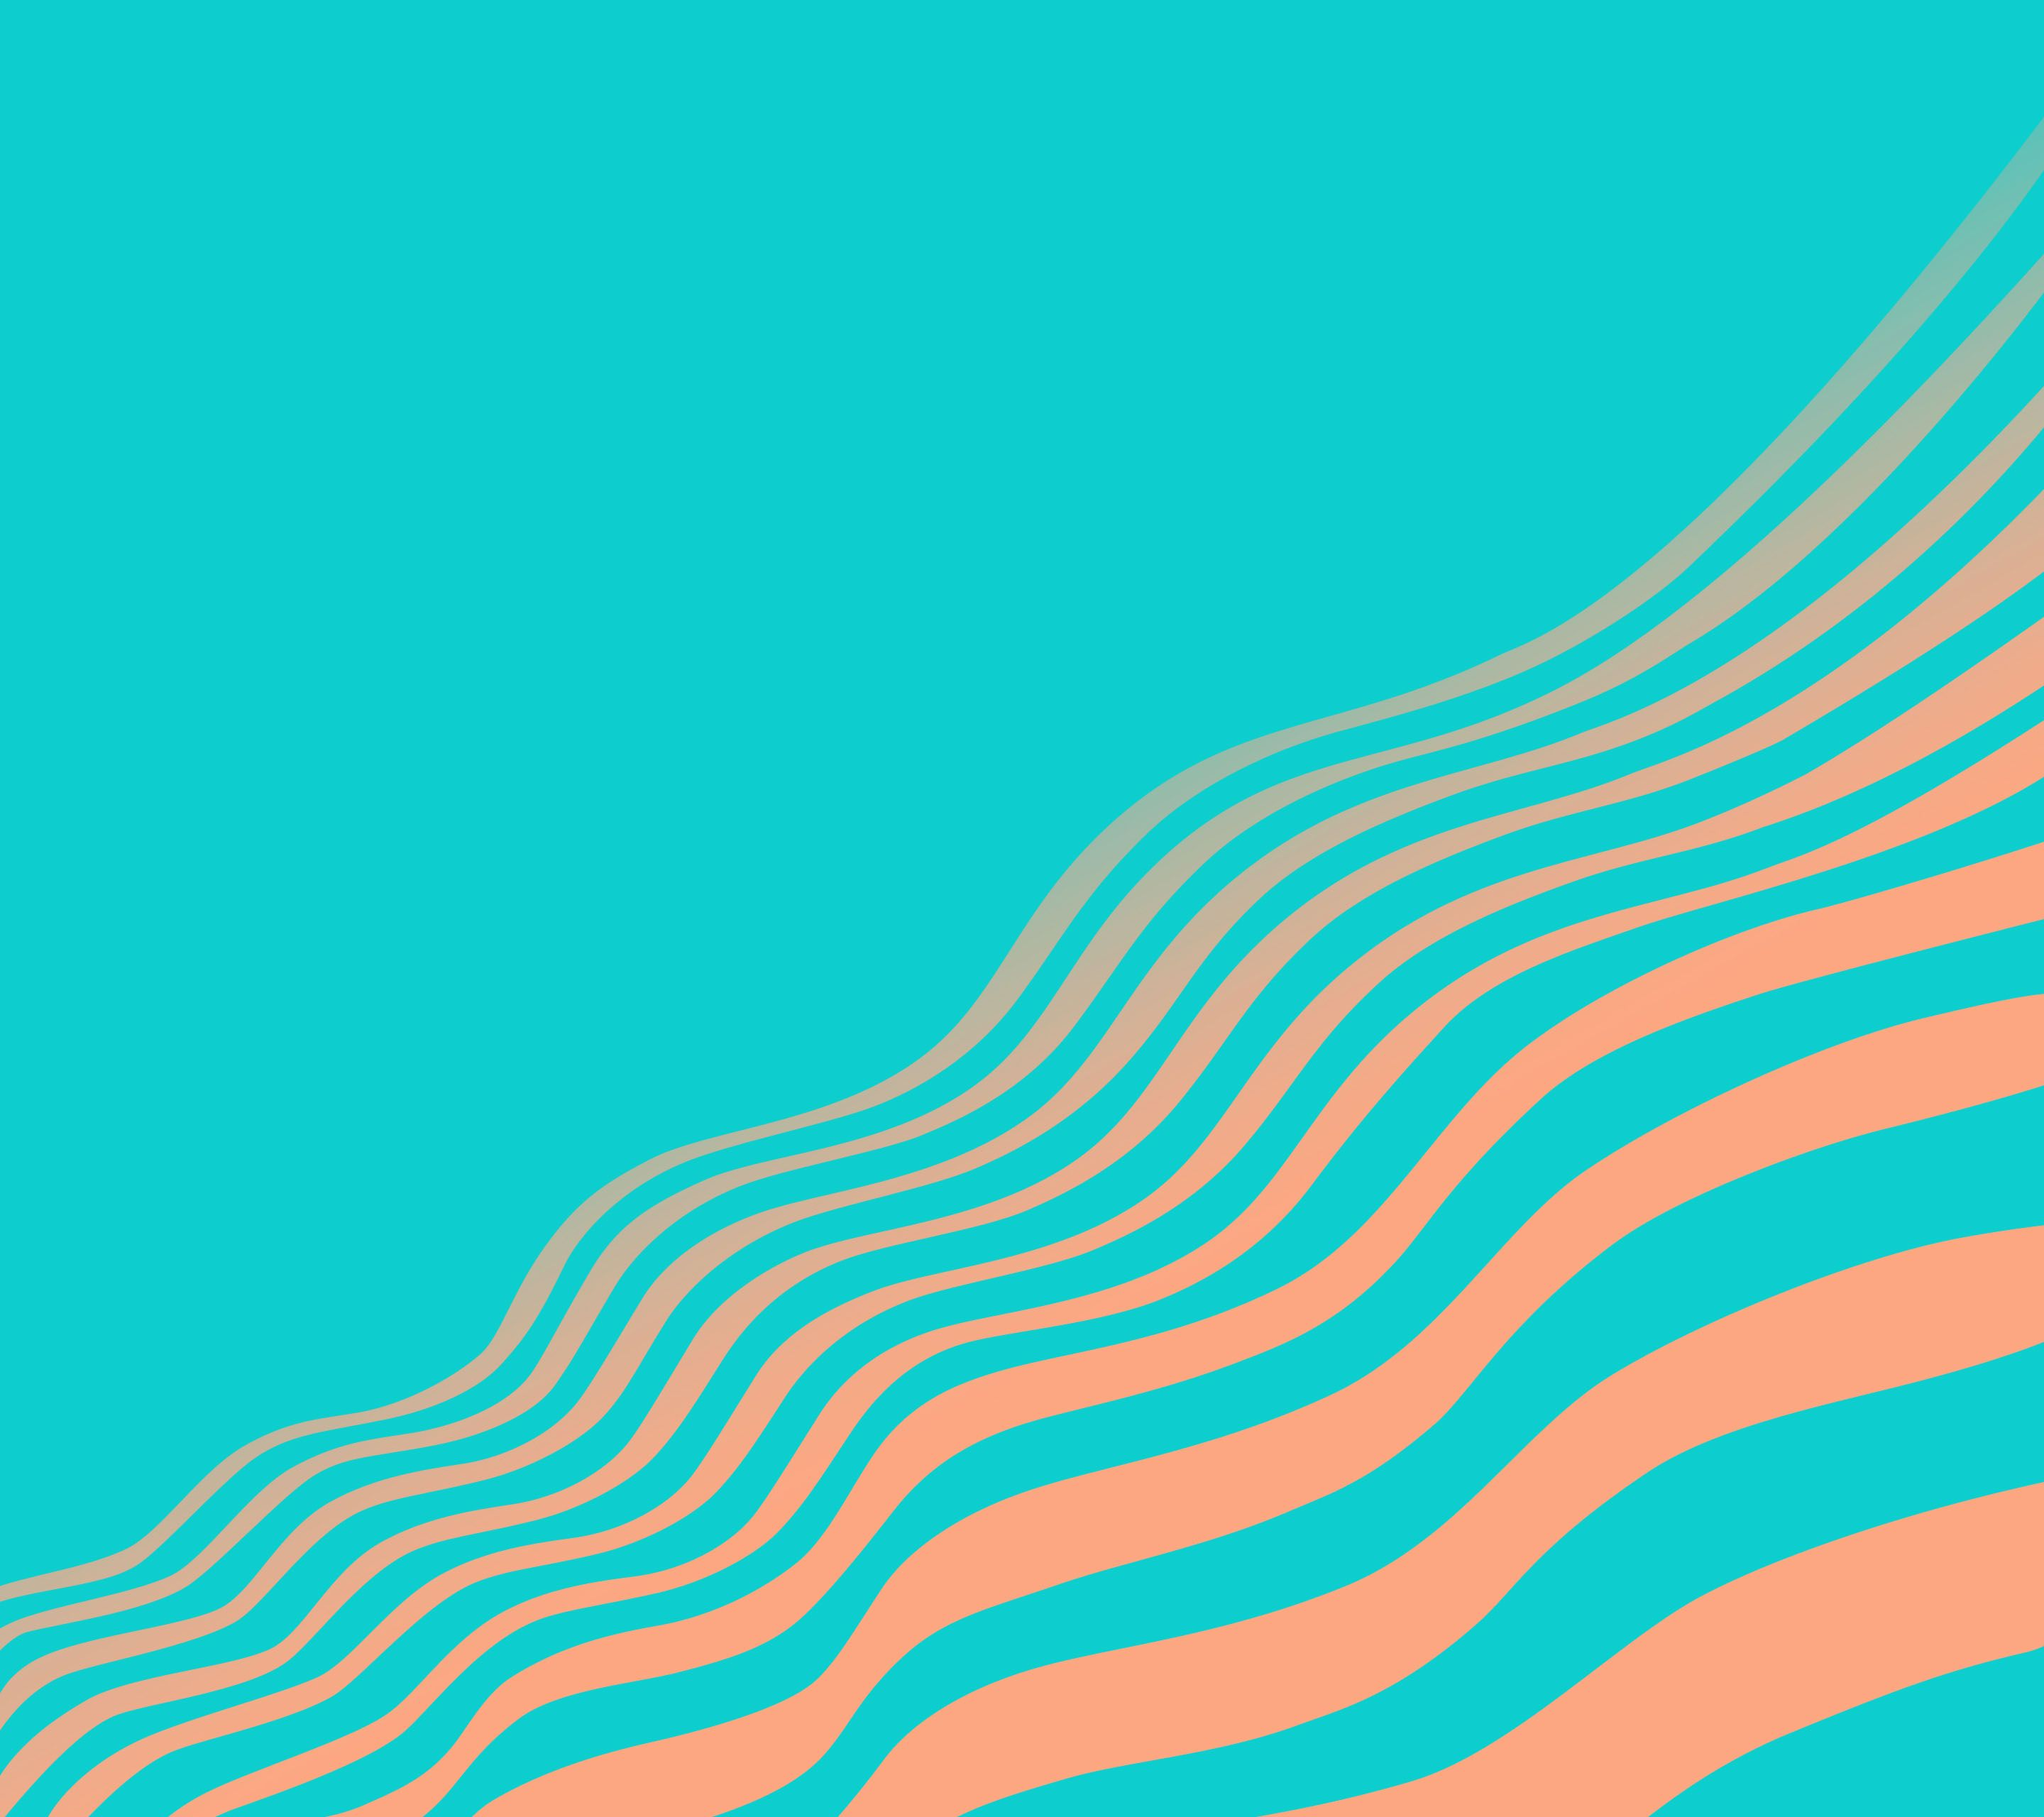 heres the complete htc 10 wallpapers collection